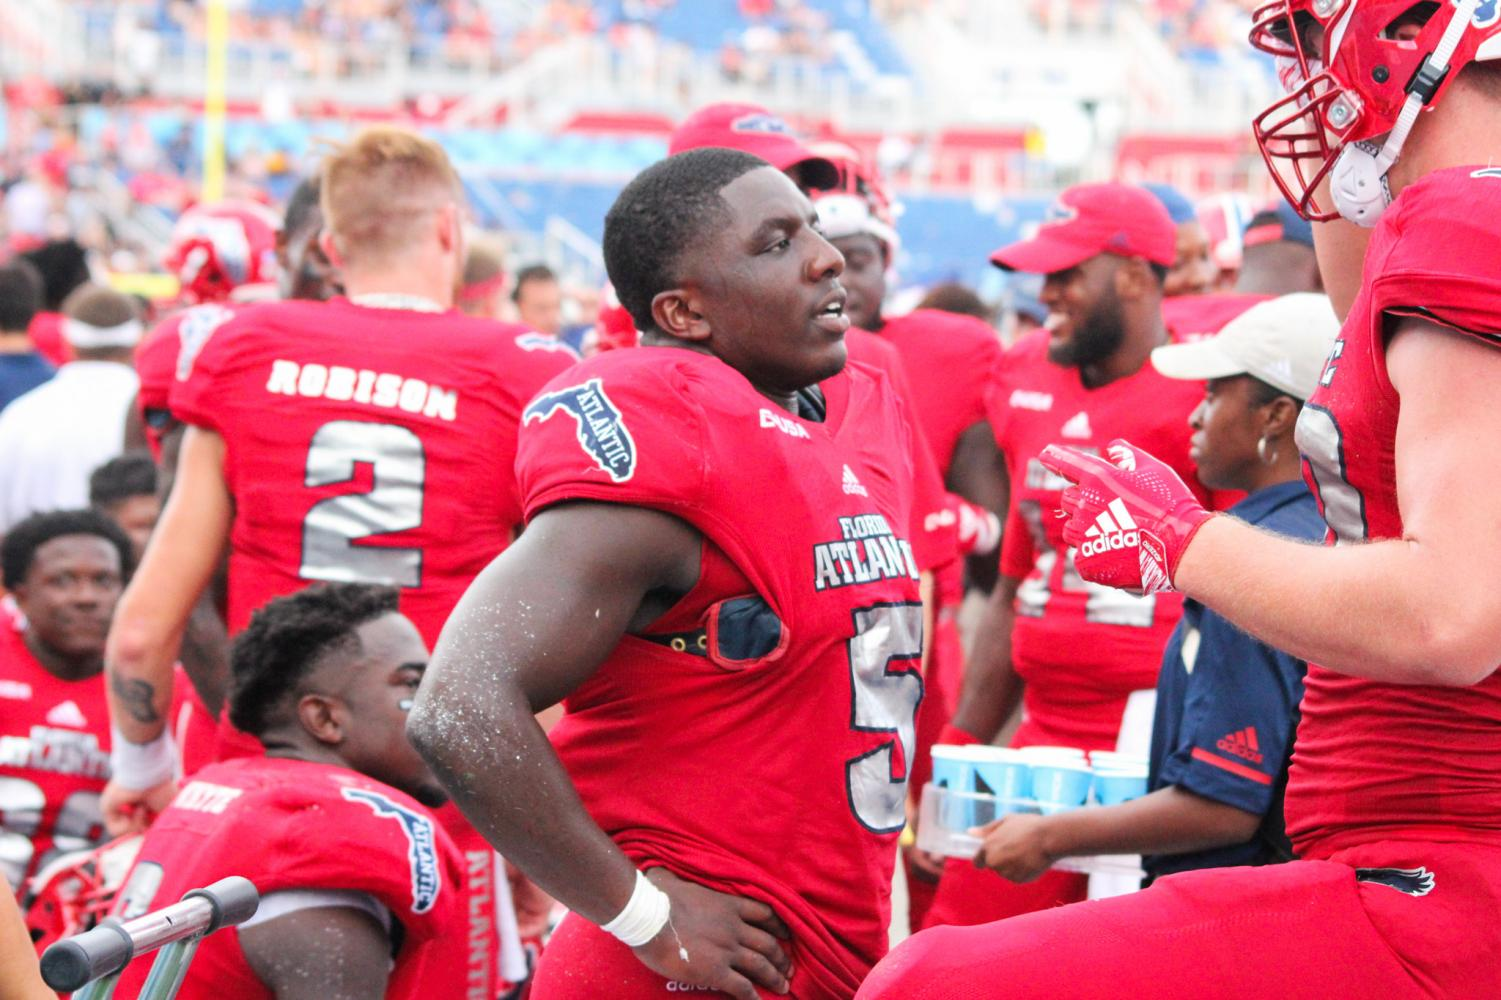 FAU junior running back Devin Singletary (5) talks with his teammates on the sidelines before heading back out to the field. Photo by: Christopher Blackshear